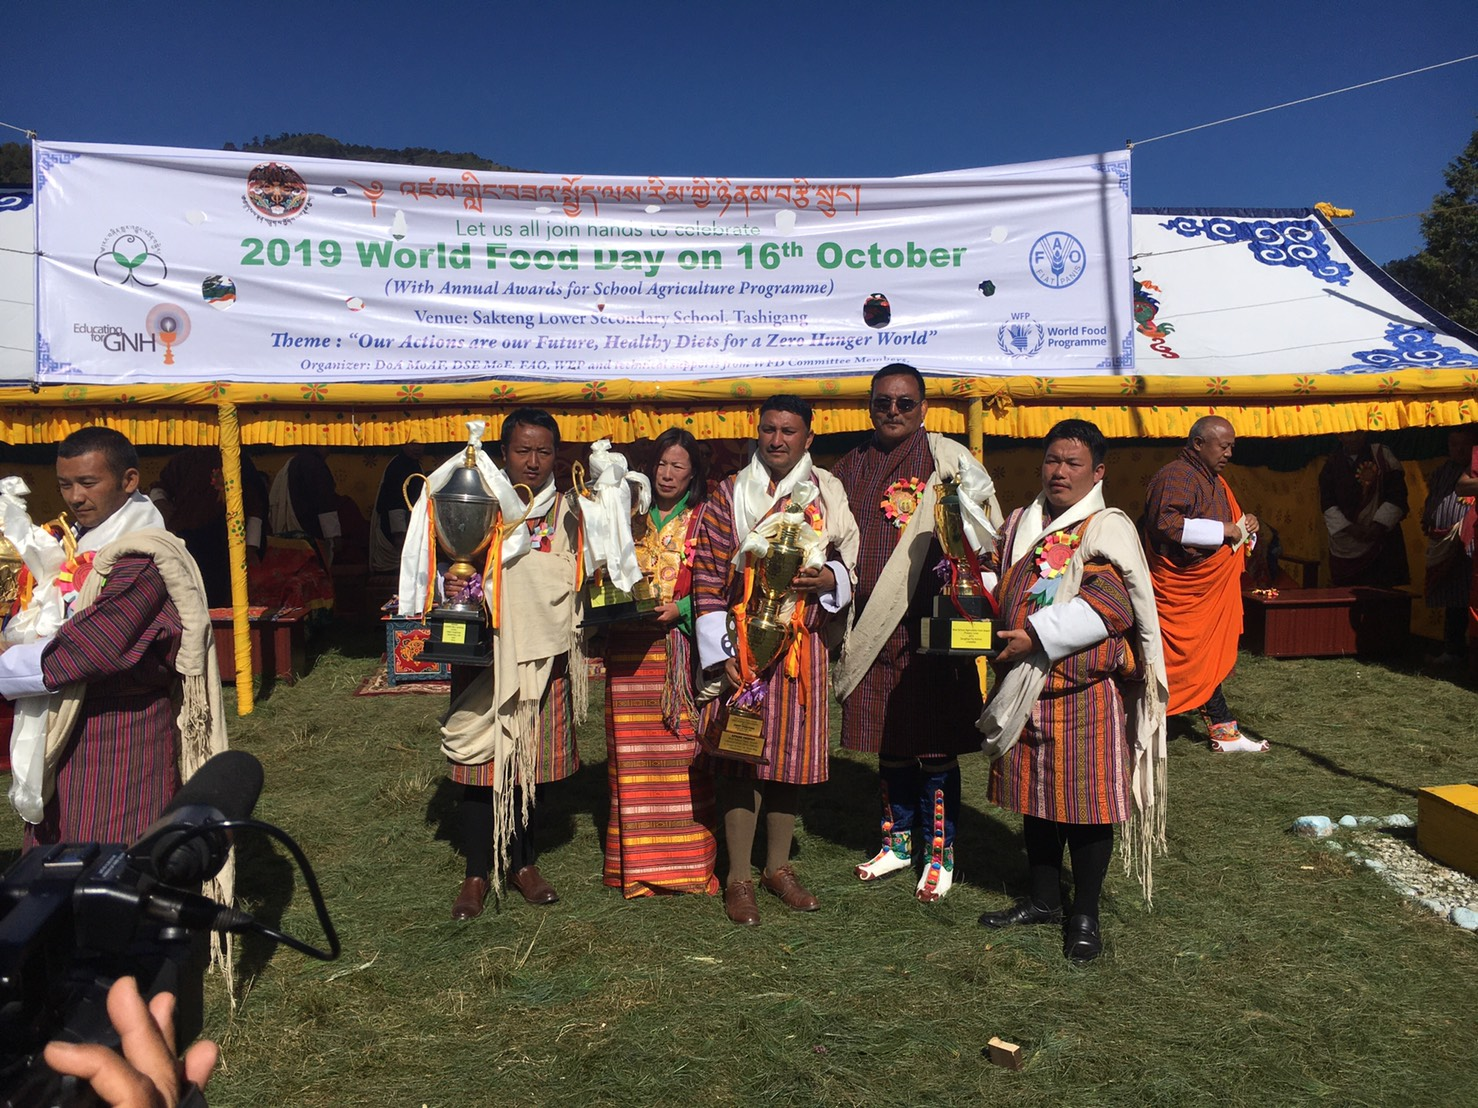 Bhutan's World Food Day 2019